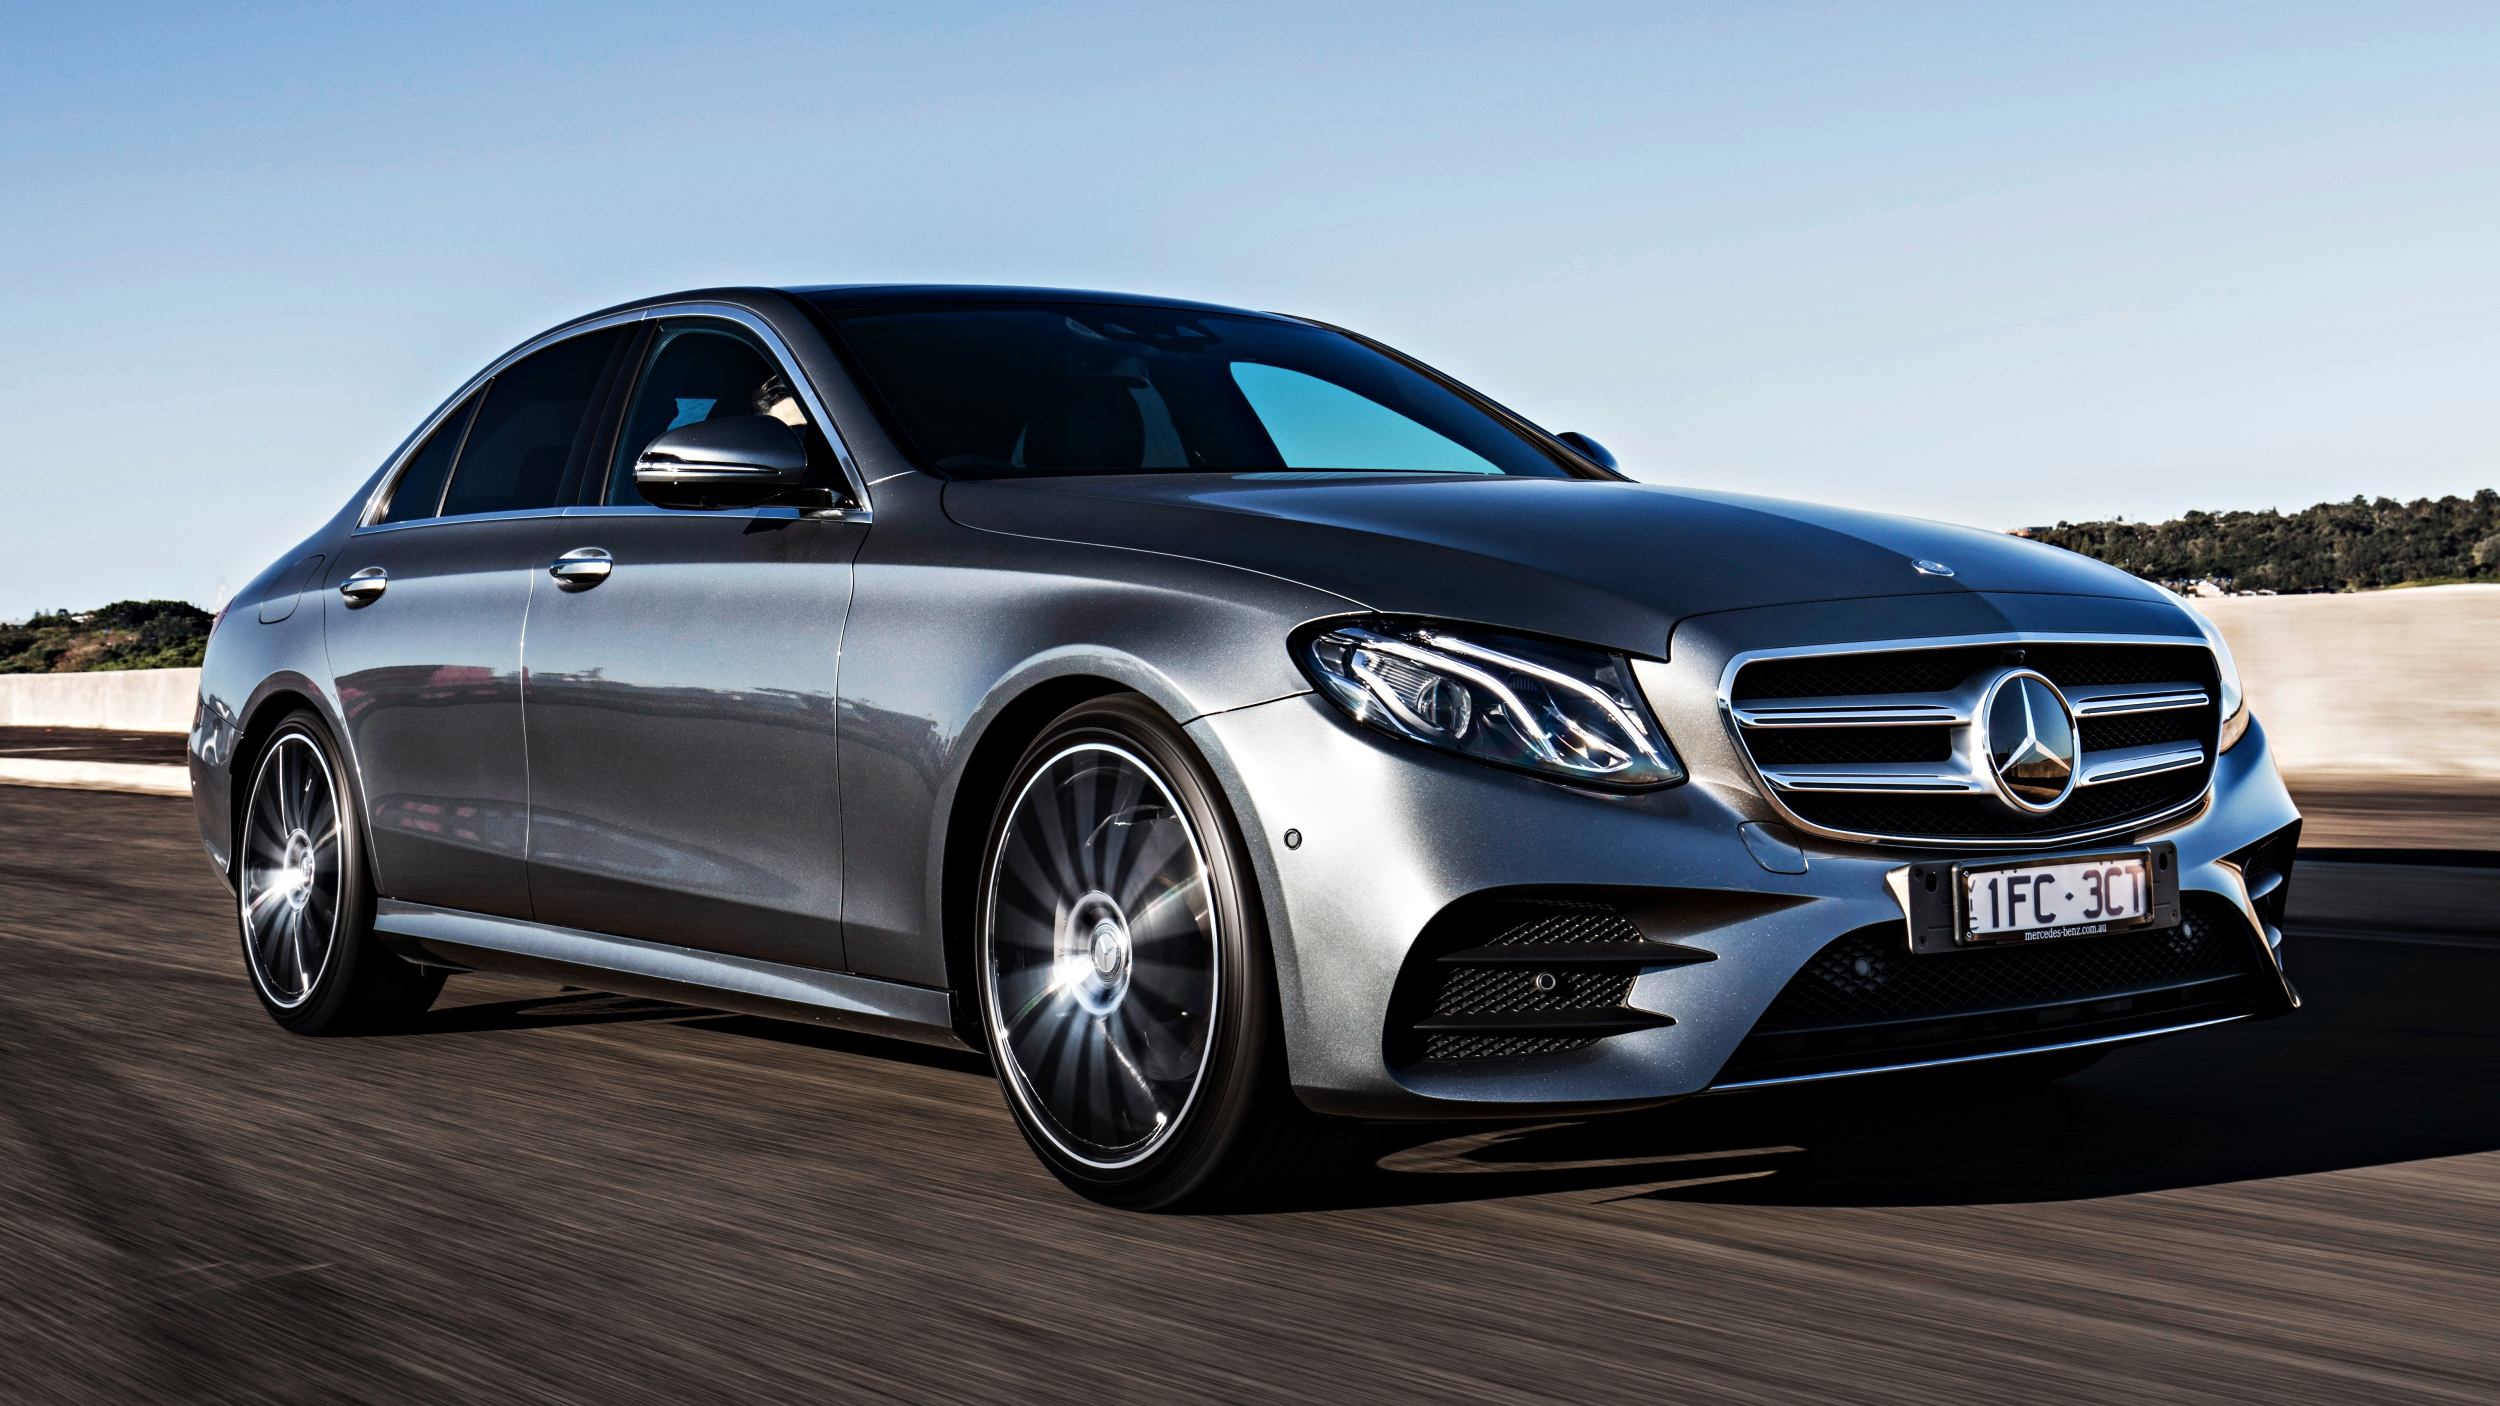 News - 2019 Mercedes-Benz E-Class Packs More Brains & Brawn